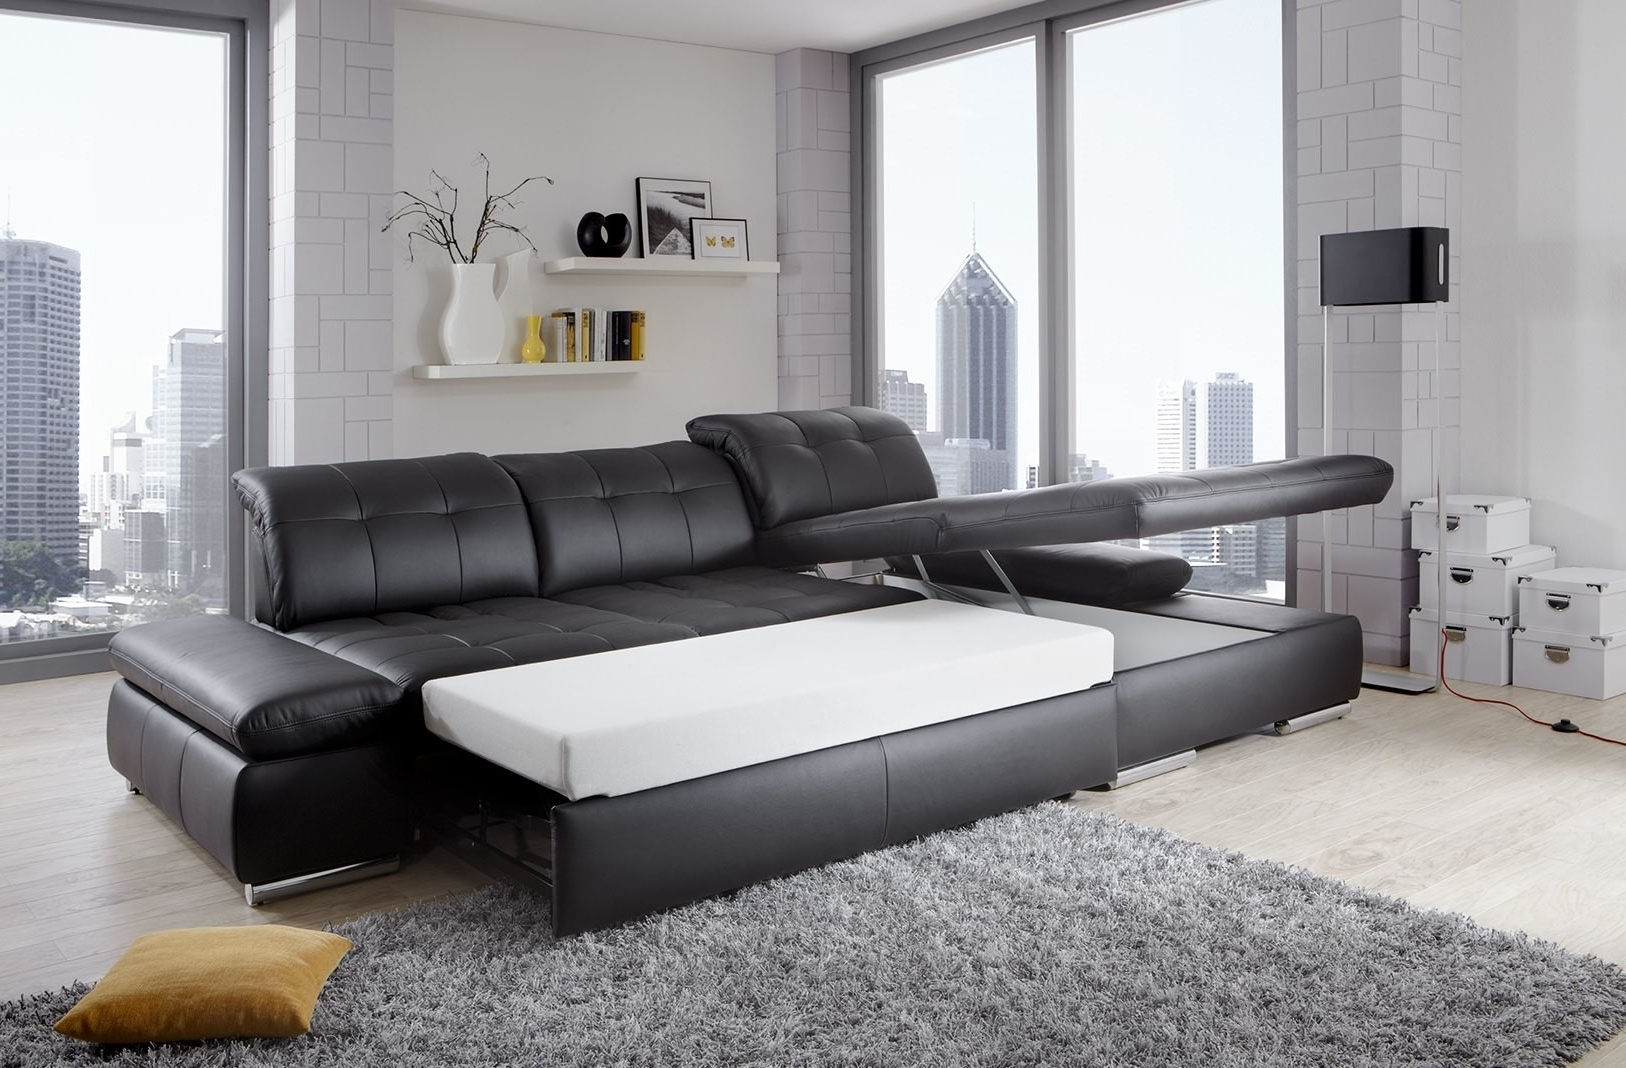 Most Up To Date Alpine Sectional Sofa In Black Leather Left Chaise Inside Trinidad And Tobago Sectional Sofas (View 9 of 20)